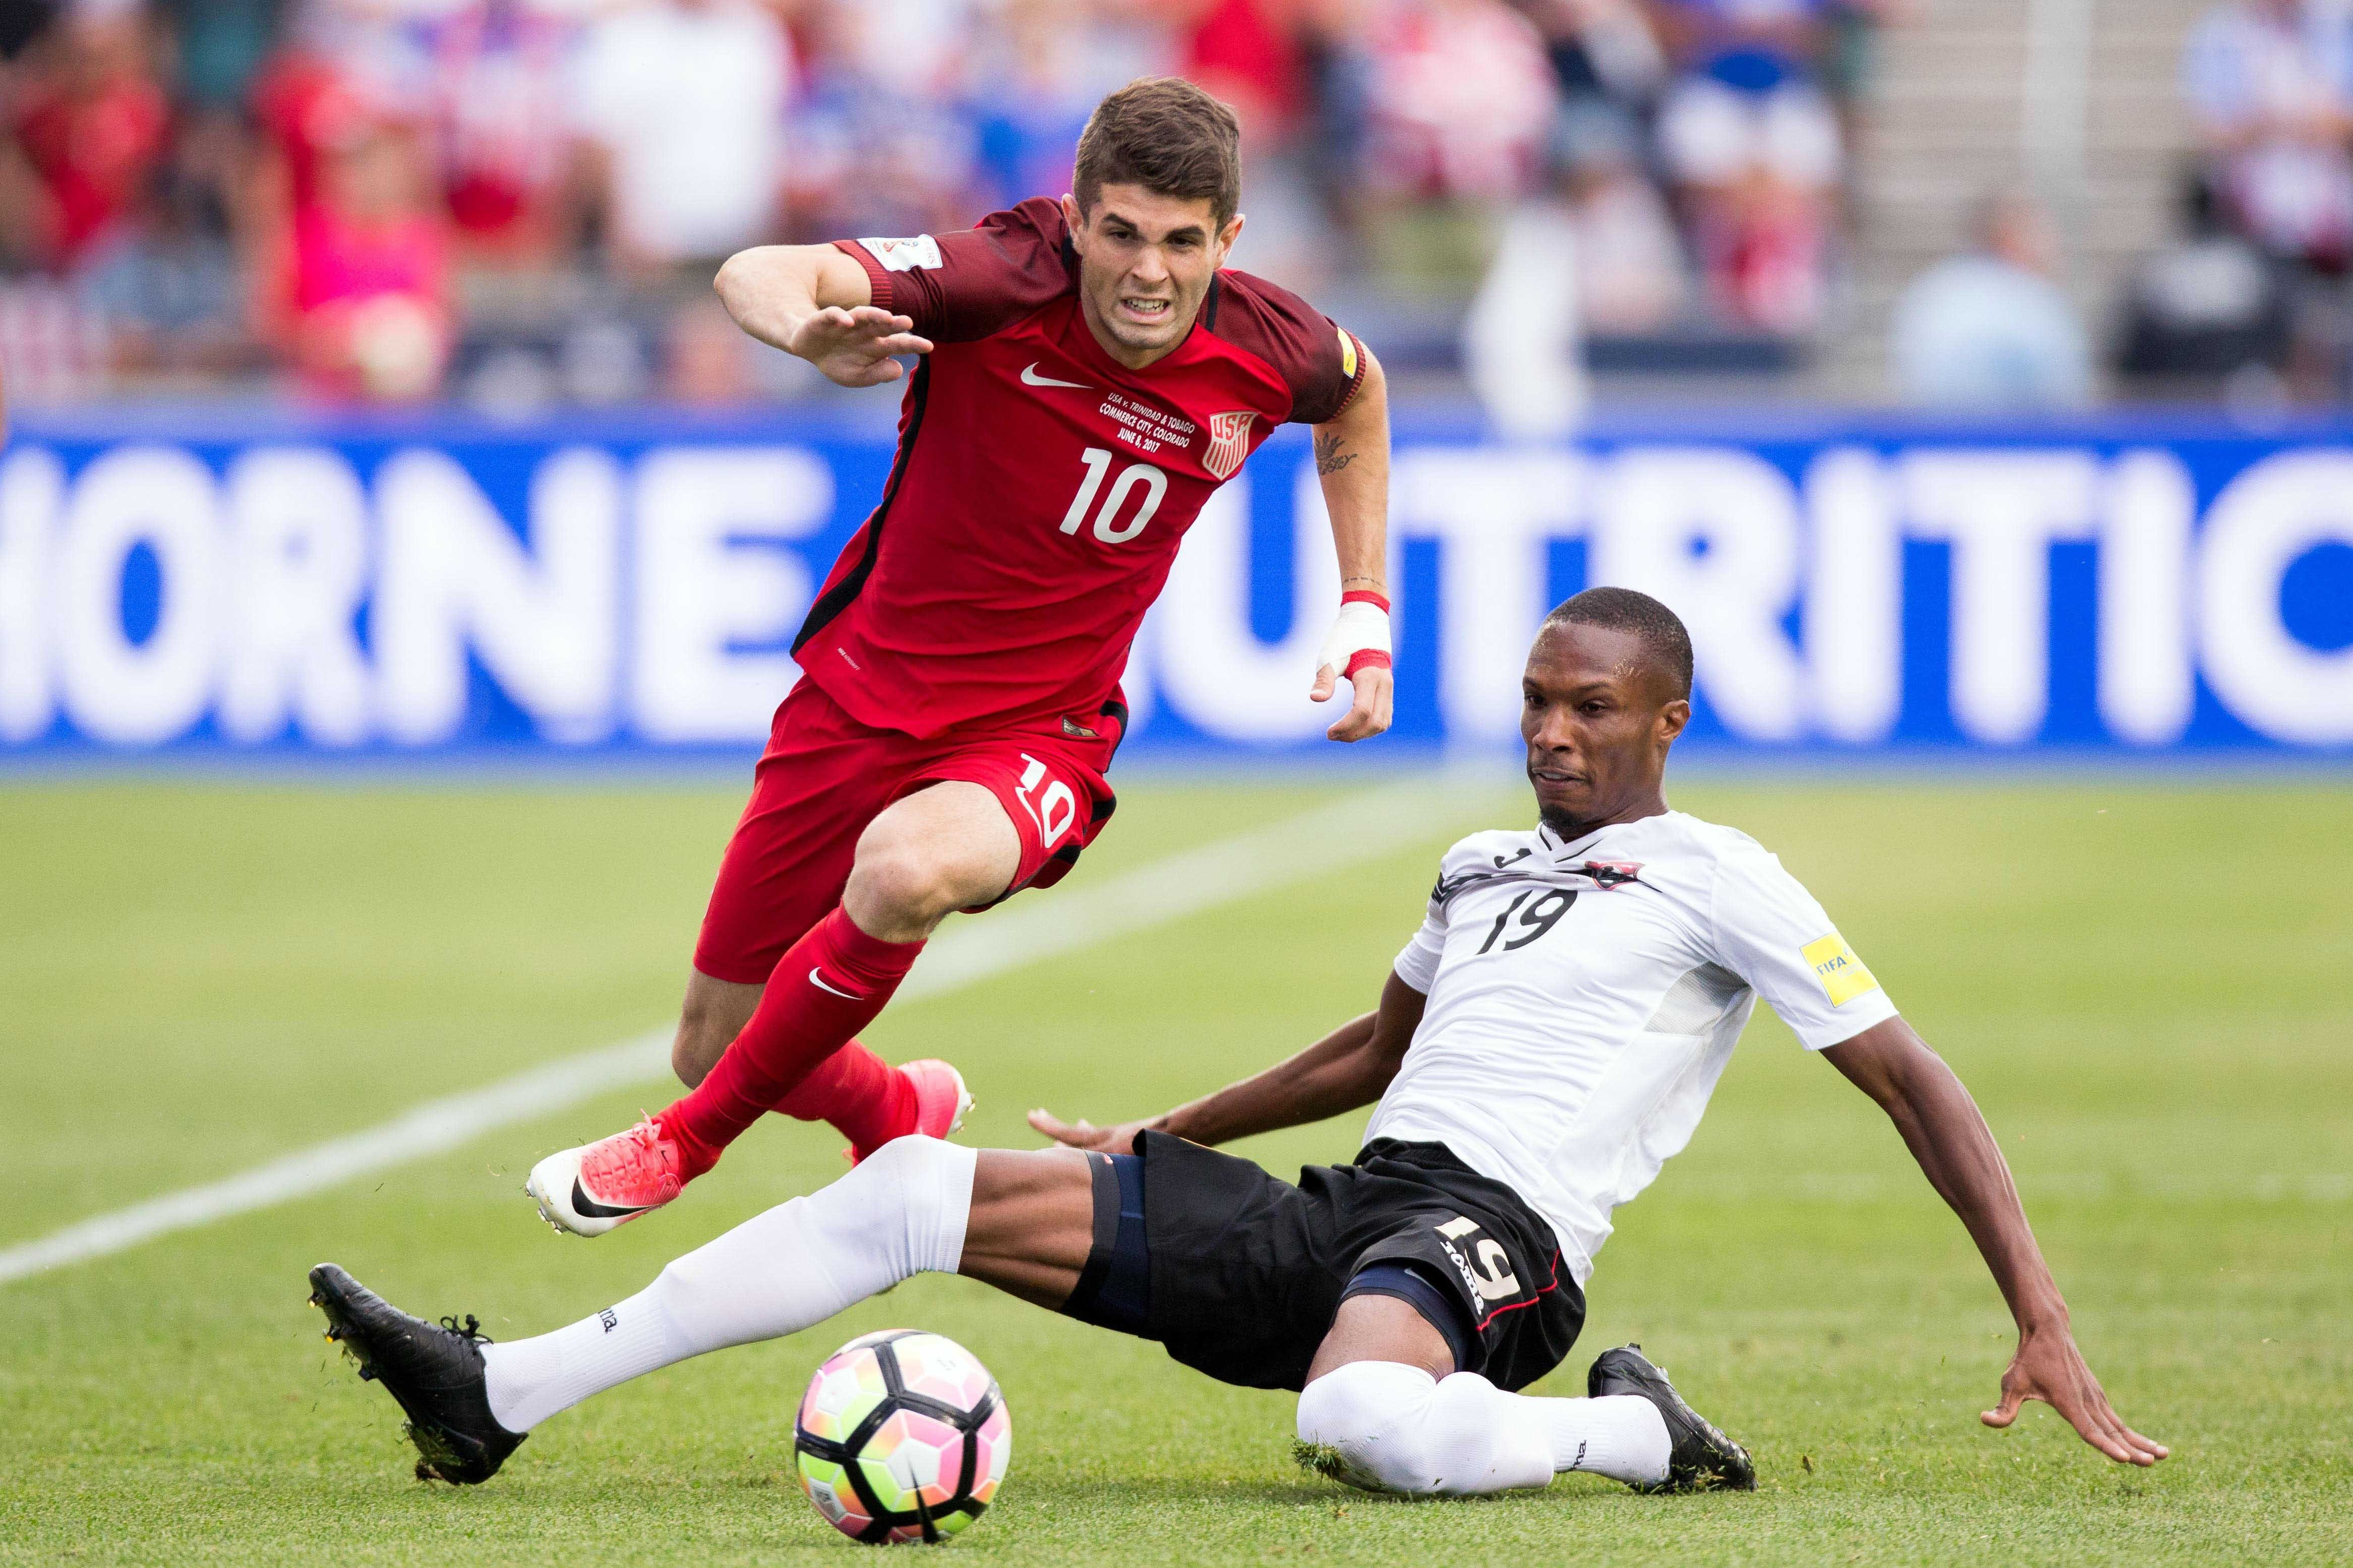 Christian Pulisic's dazzling play puts USA's 2018 World Cup hopes back on track